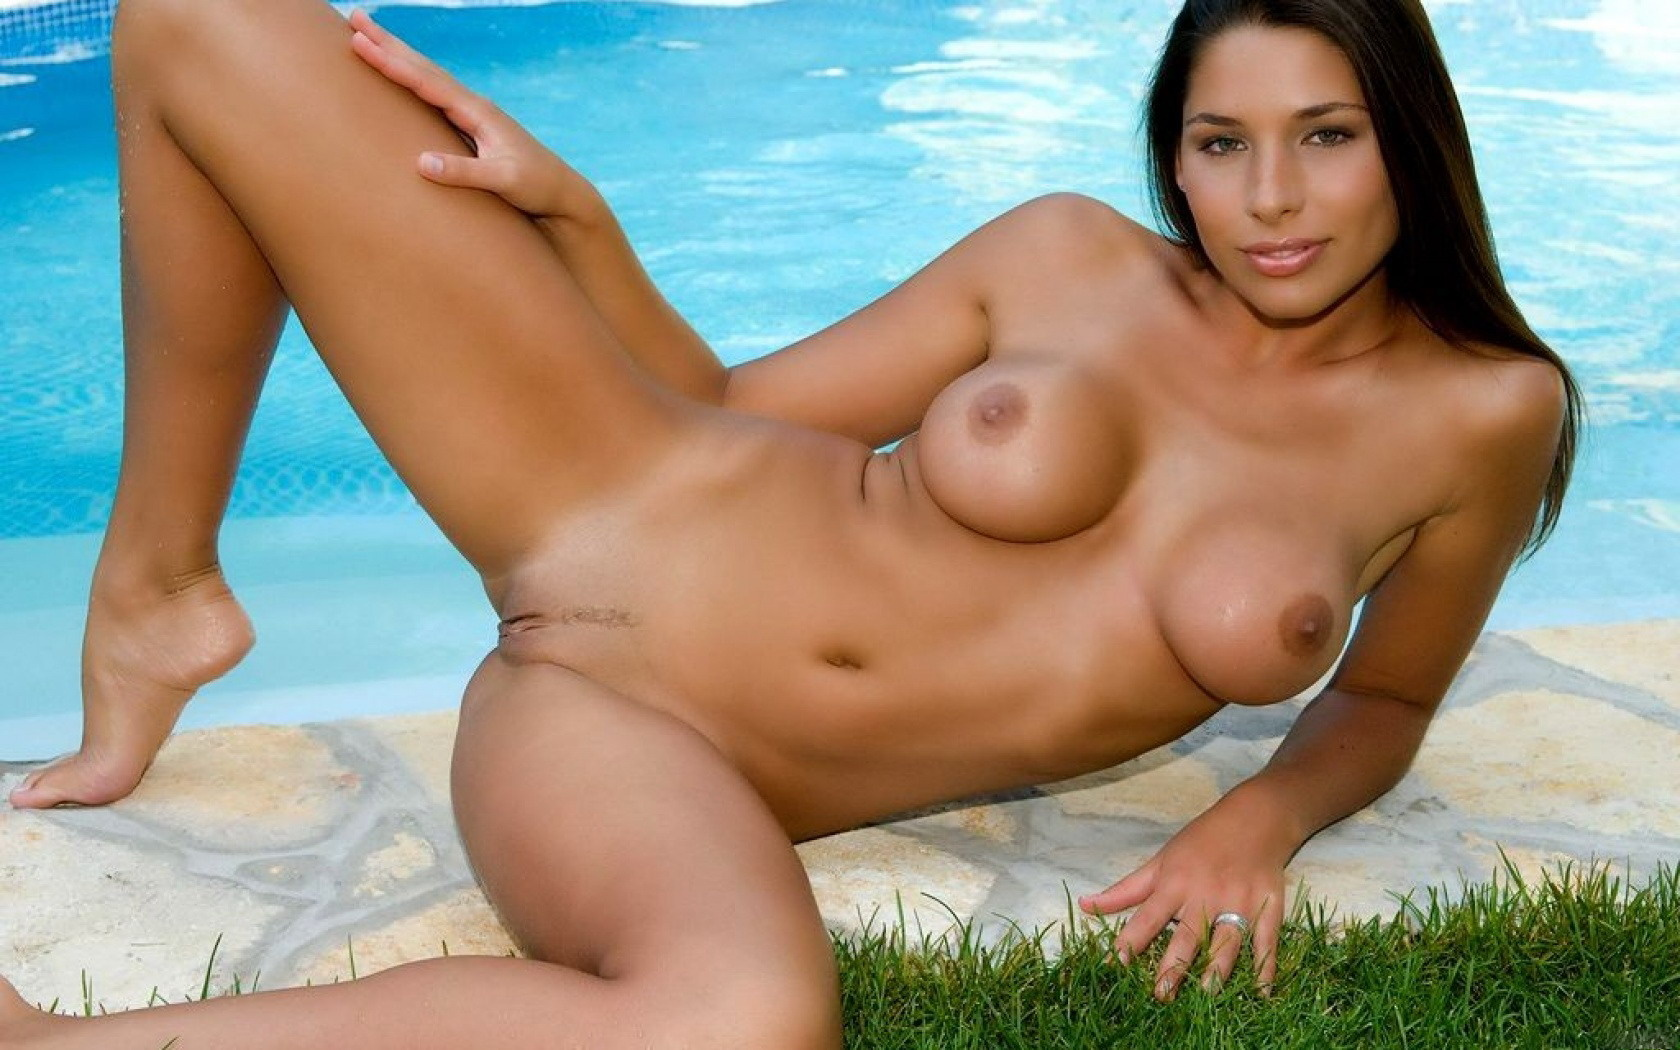 Wallpaper Nude, Titts, Pussy, Pool, Tits, Brunette, Zafira, Swimming Pool, Naked, Legs, Wet, Sun, Tan, Tanned, Vagina, Tan Lines, Landing Strip -6460